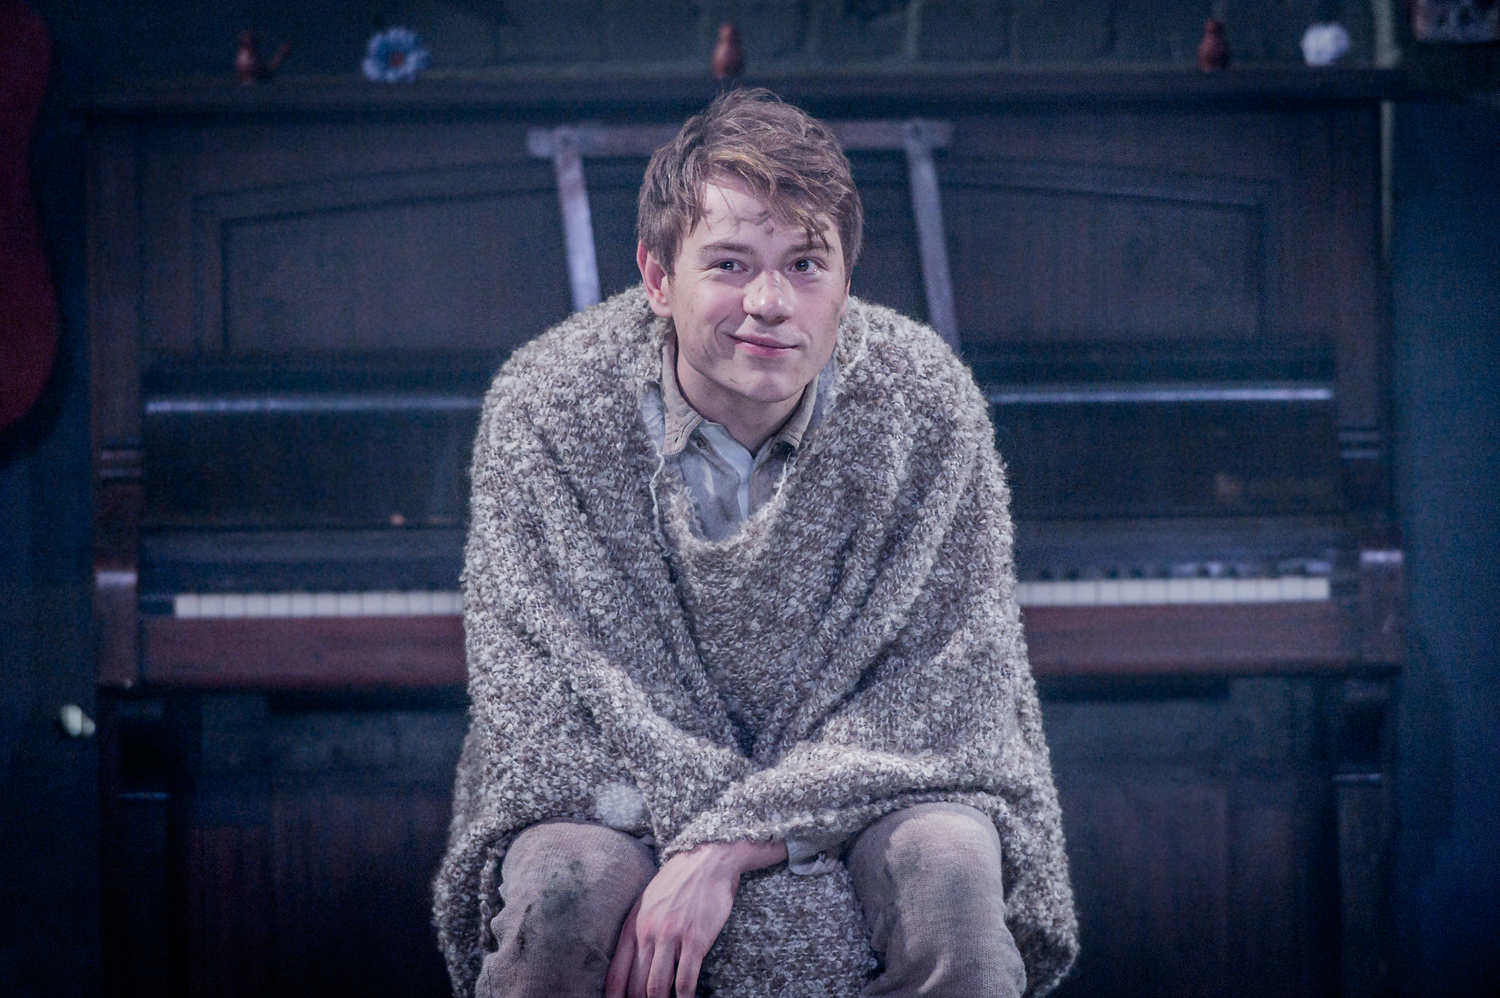 Sam Townsend in As You Like It, composed by Jude Obermüller (photo by Robert Workman)